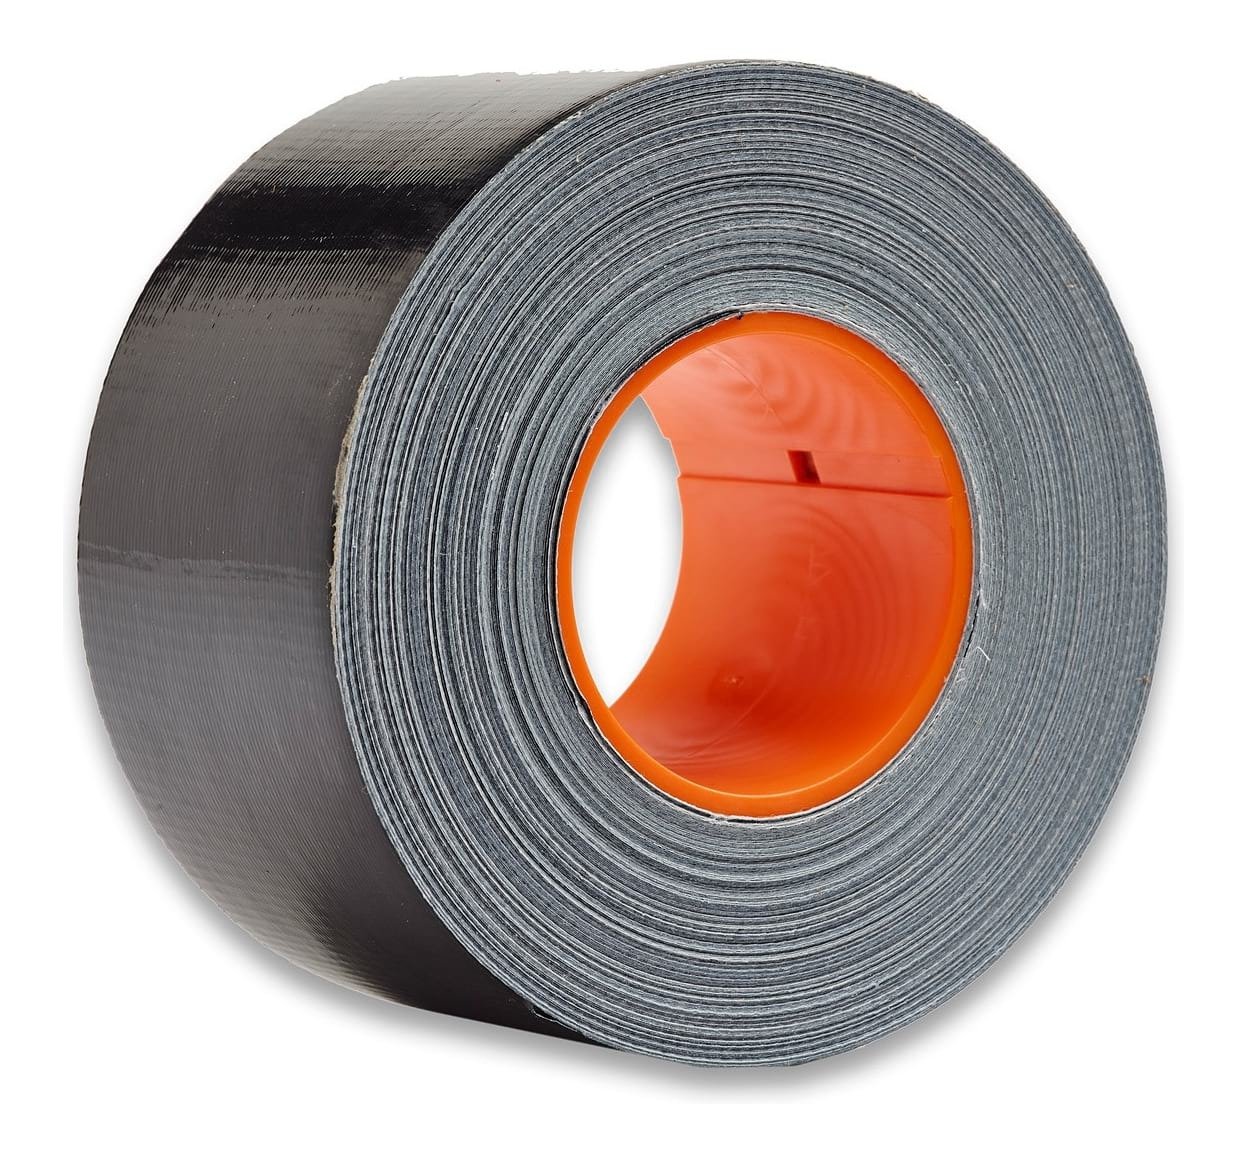 GaffTech GT Duct 500 Premium Cloth Duct Gaff Tape - 3 inch Black